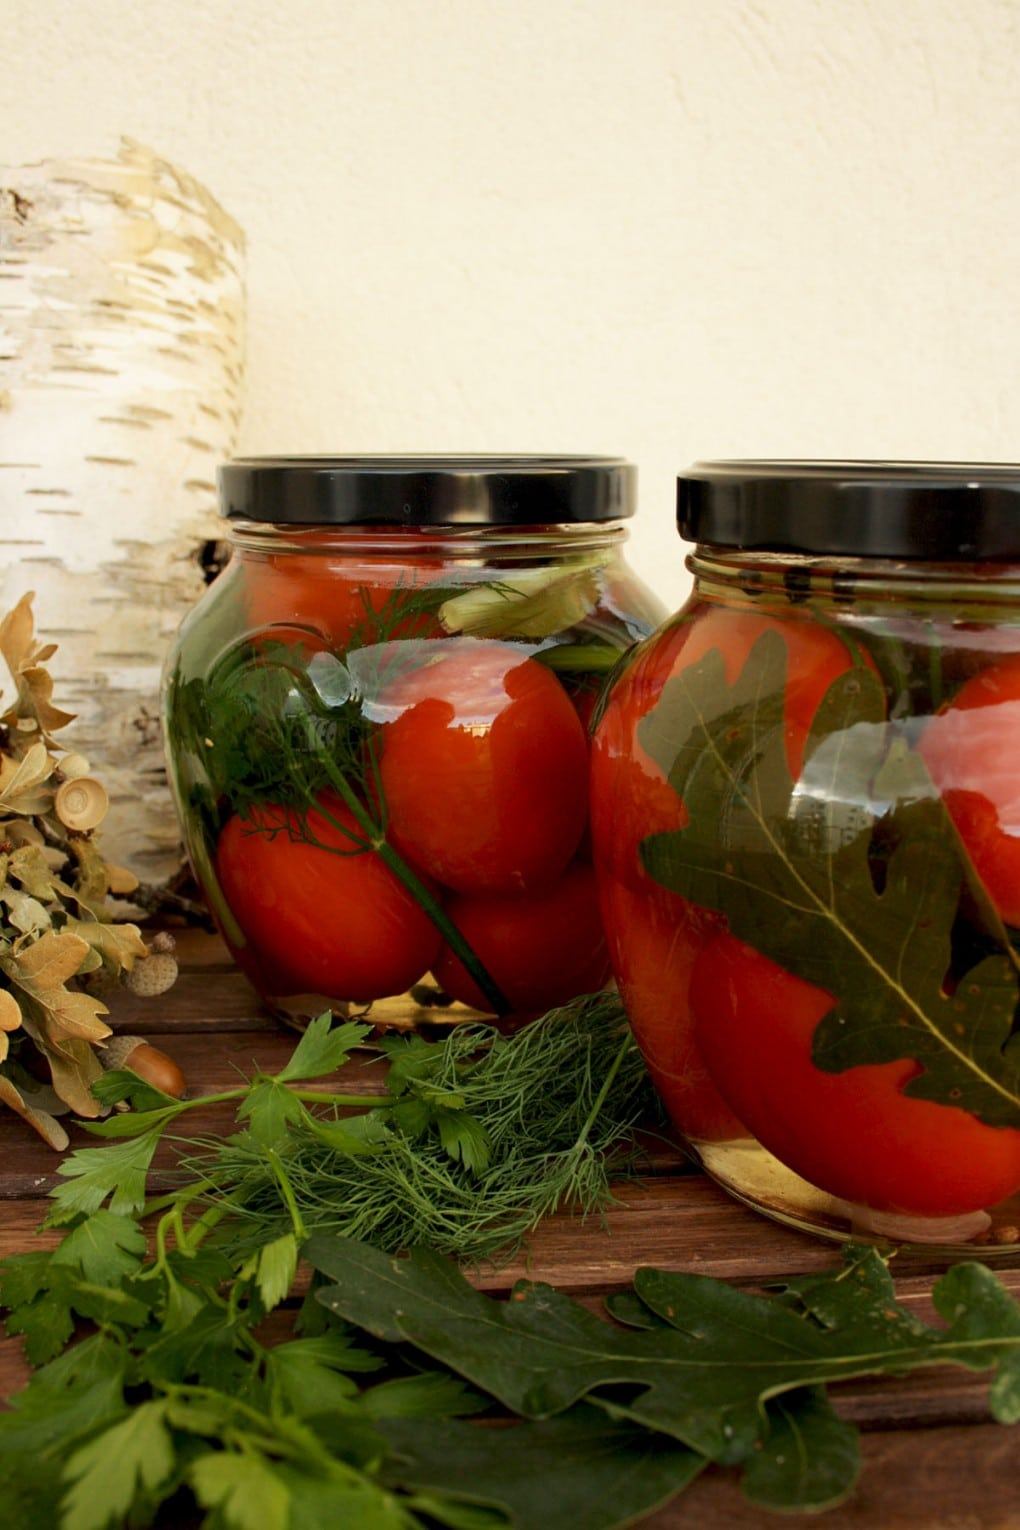 Russian Grandma's Pickled Tomatoes in Greenery Canned